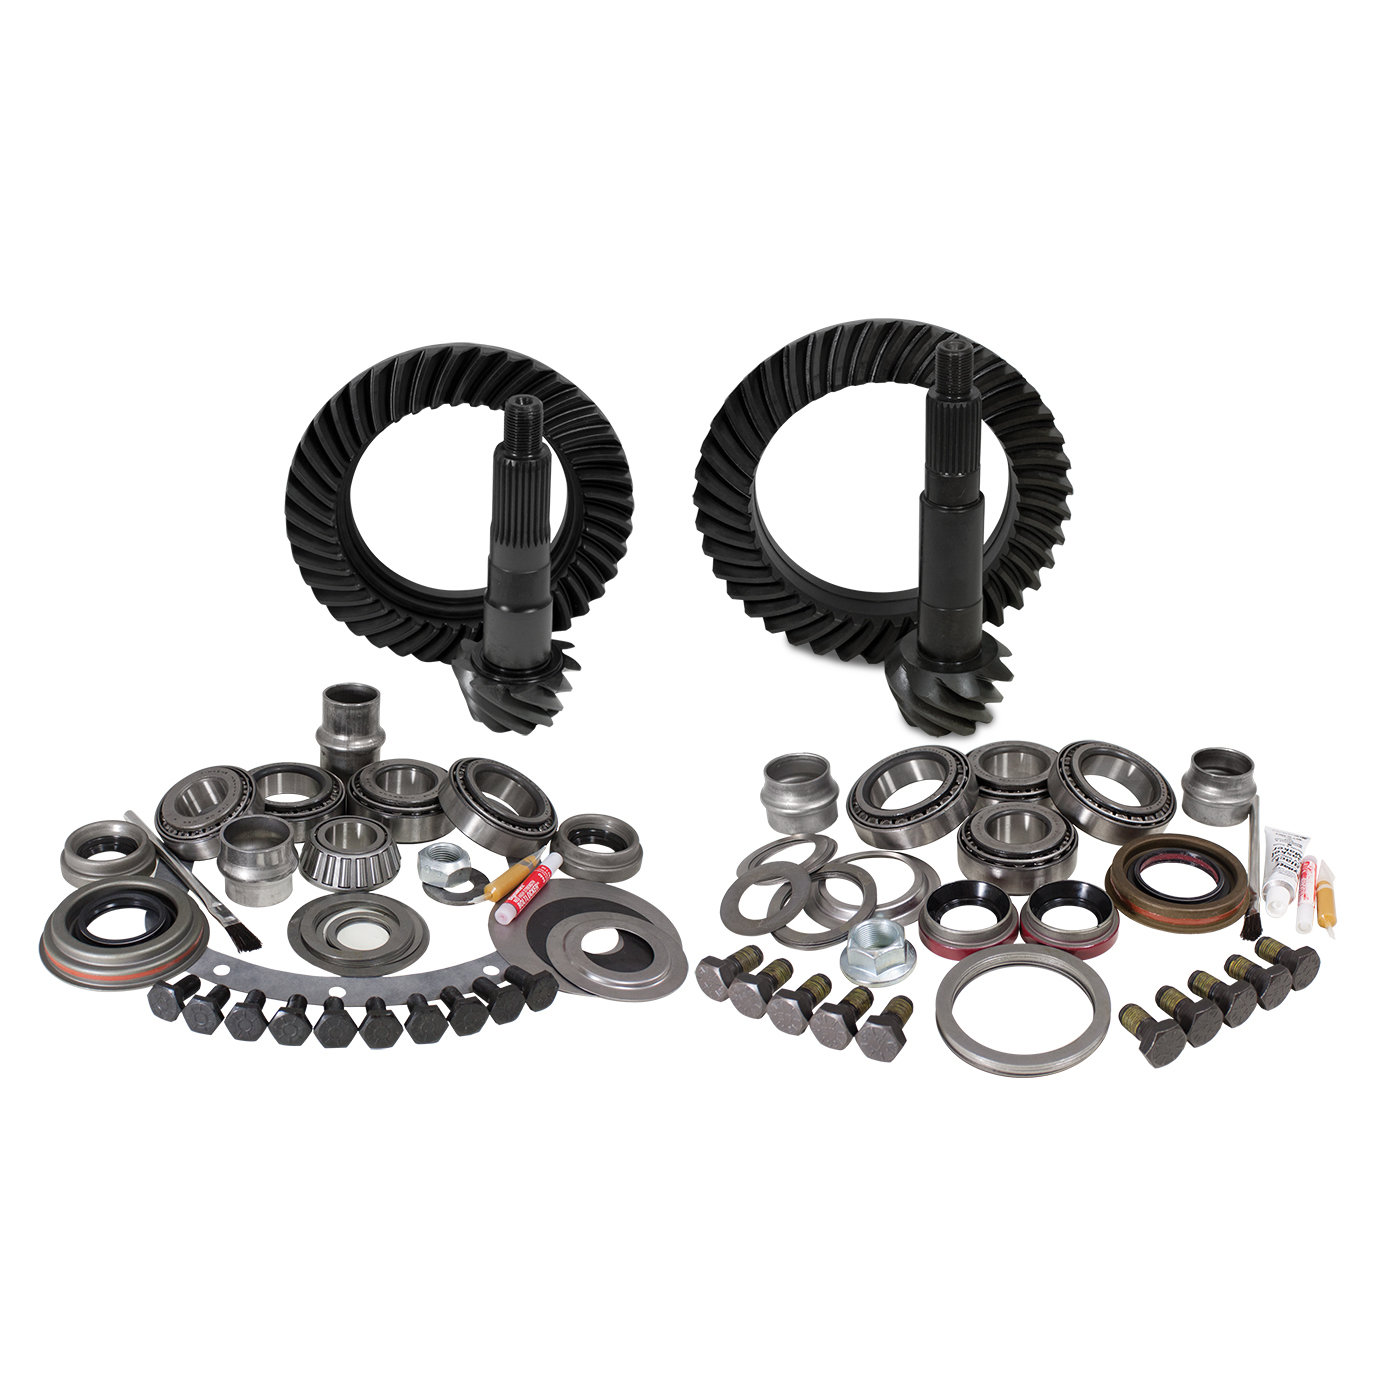 Yukon Gear & Axle Front & Rear Ring and Pinion with Master